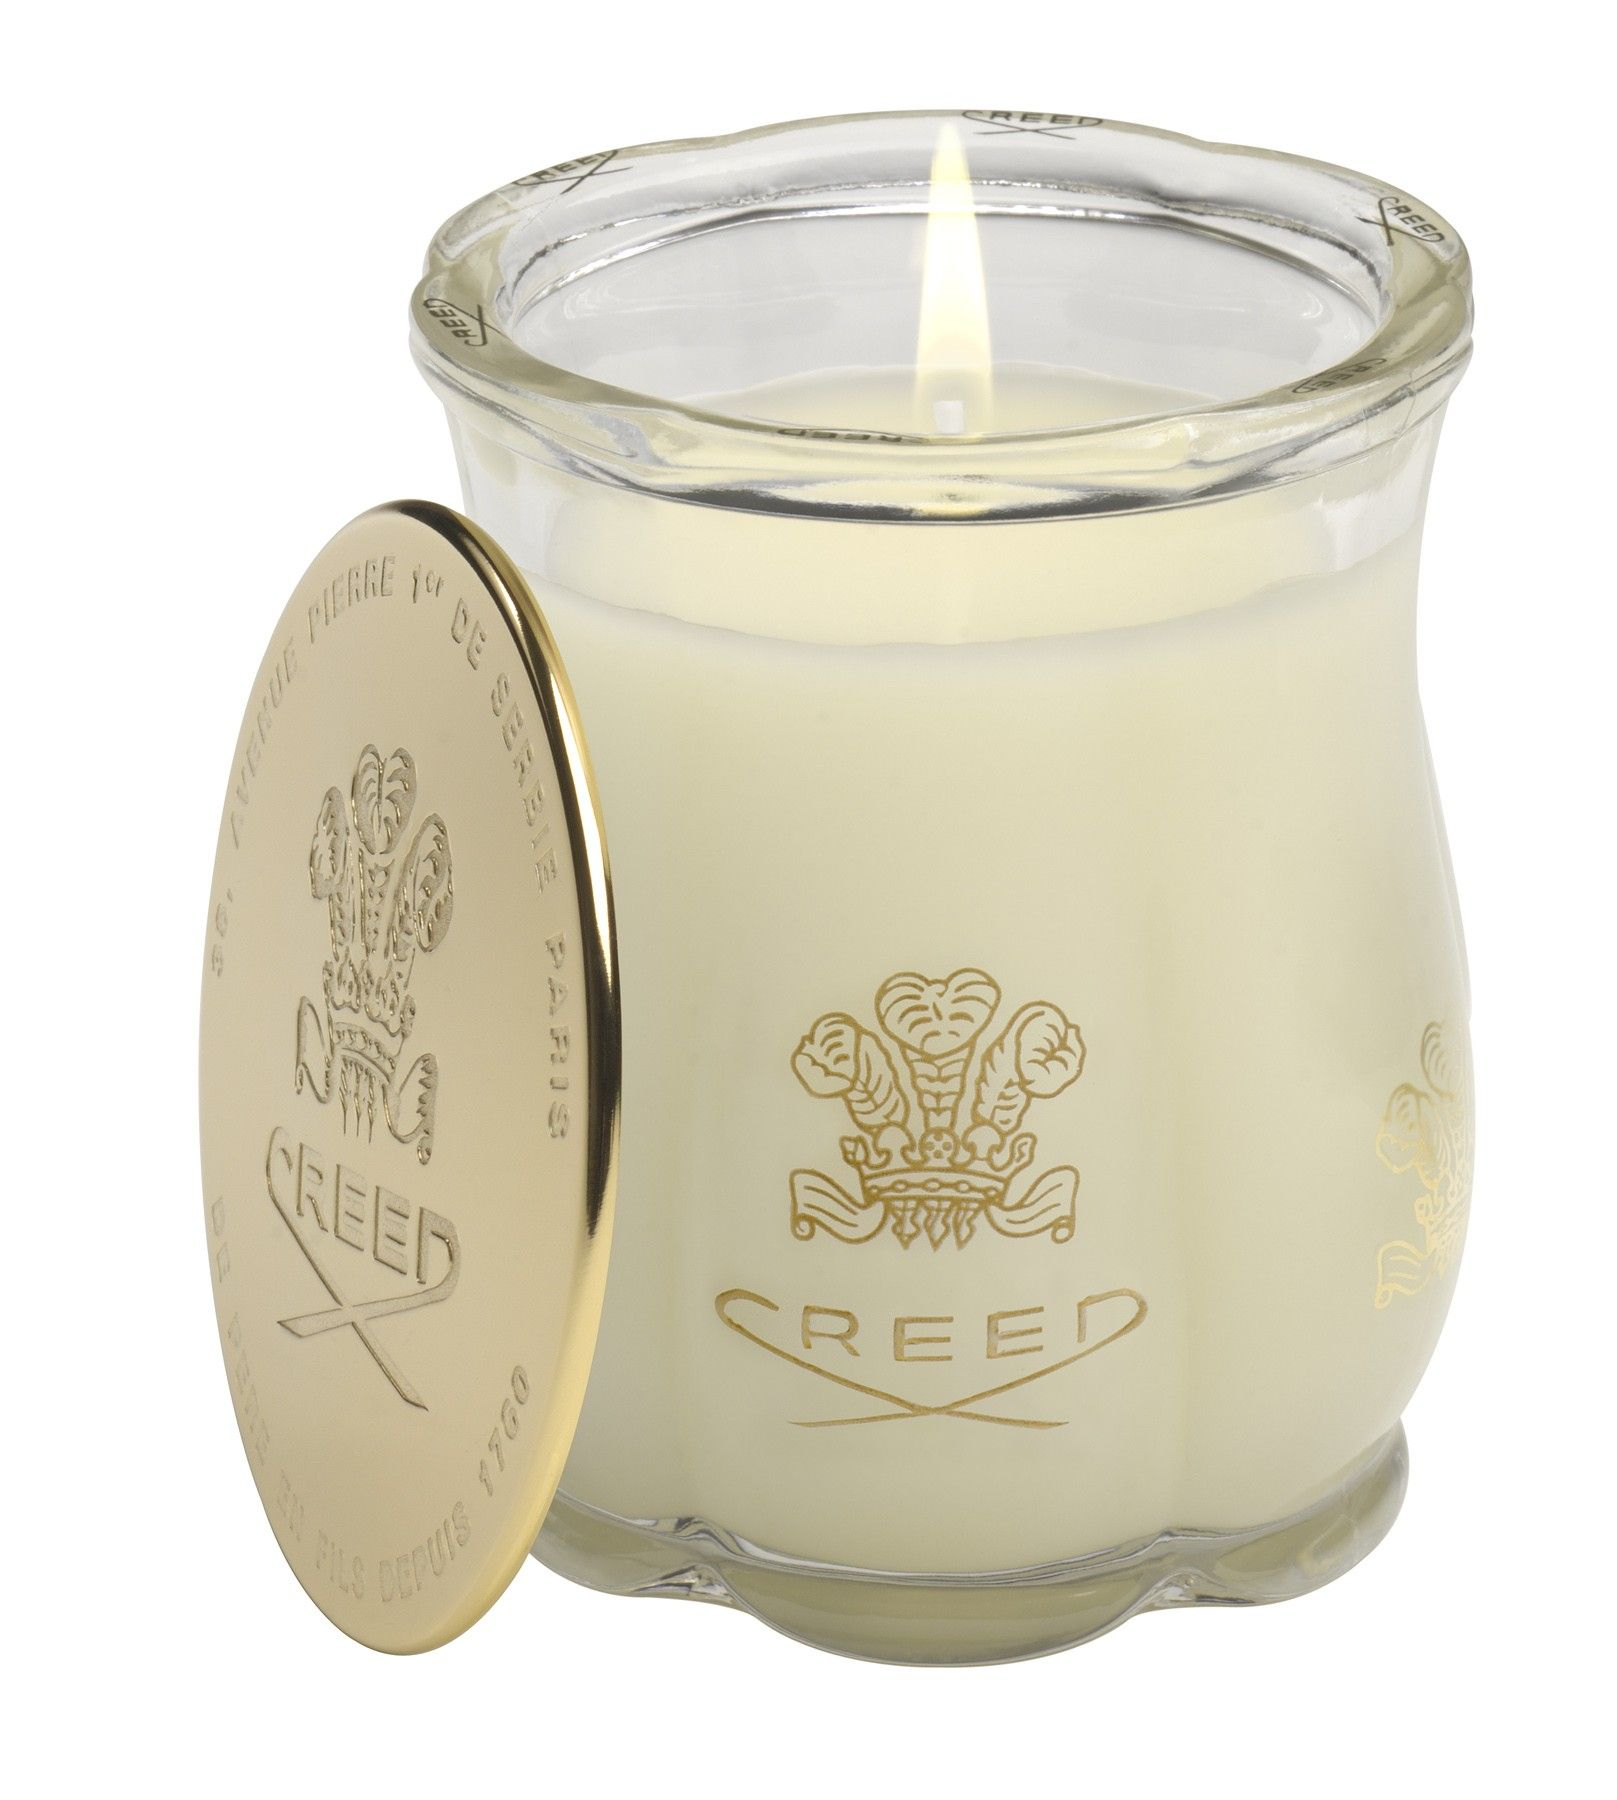 Creed Duh 3 Spring Flower Candle On Creedboutique The